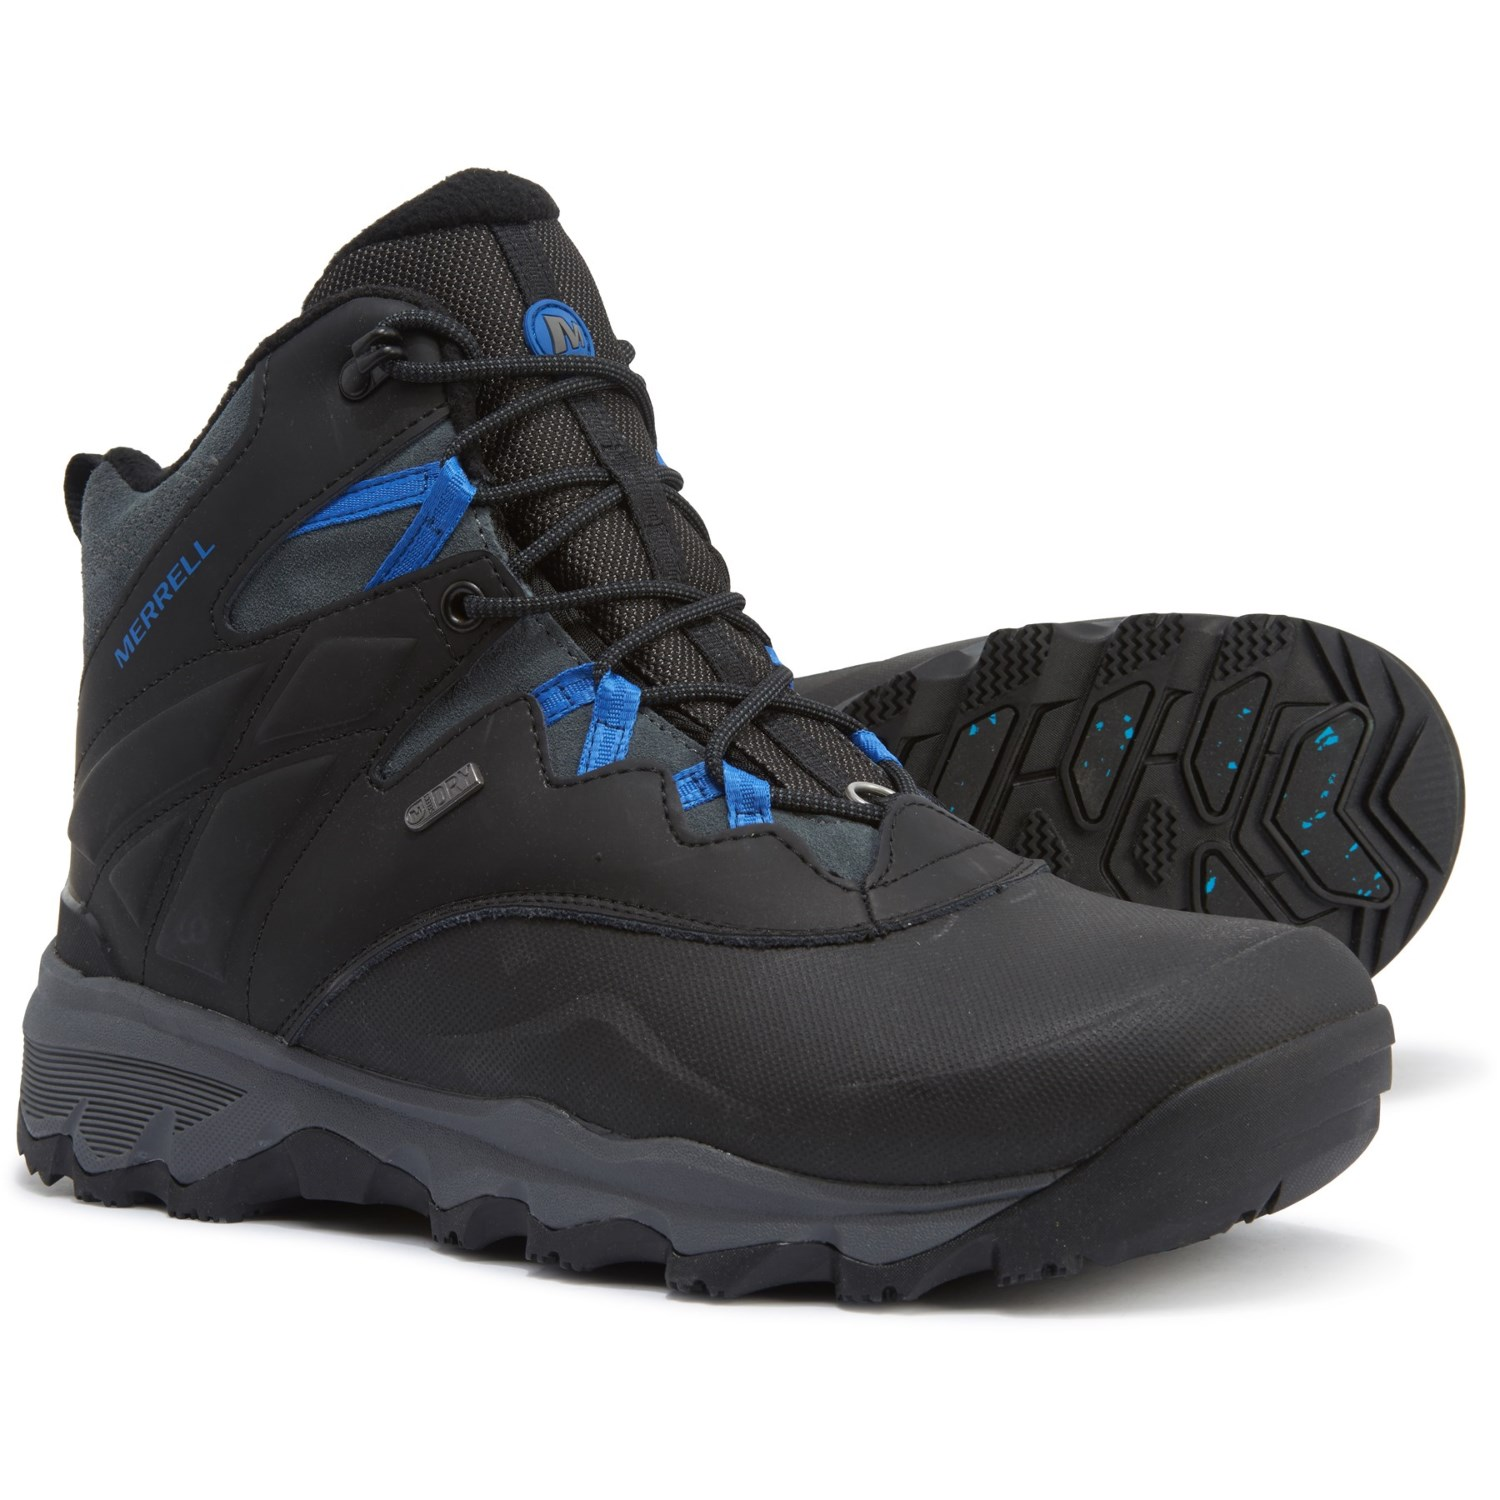 "456fef1357 Merrell Thermo Adventure Ice+ 6"" Snow Boots (For Men) - Save 33%"